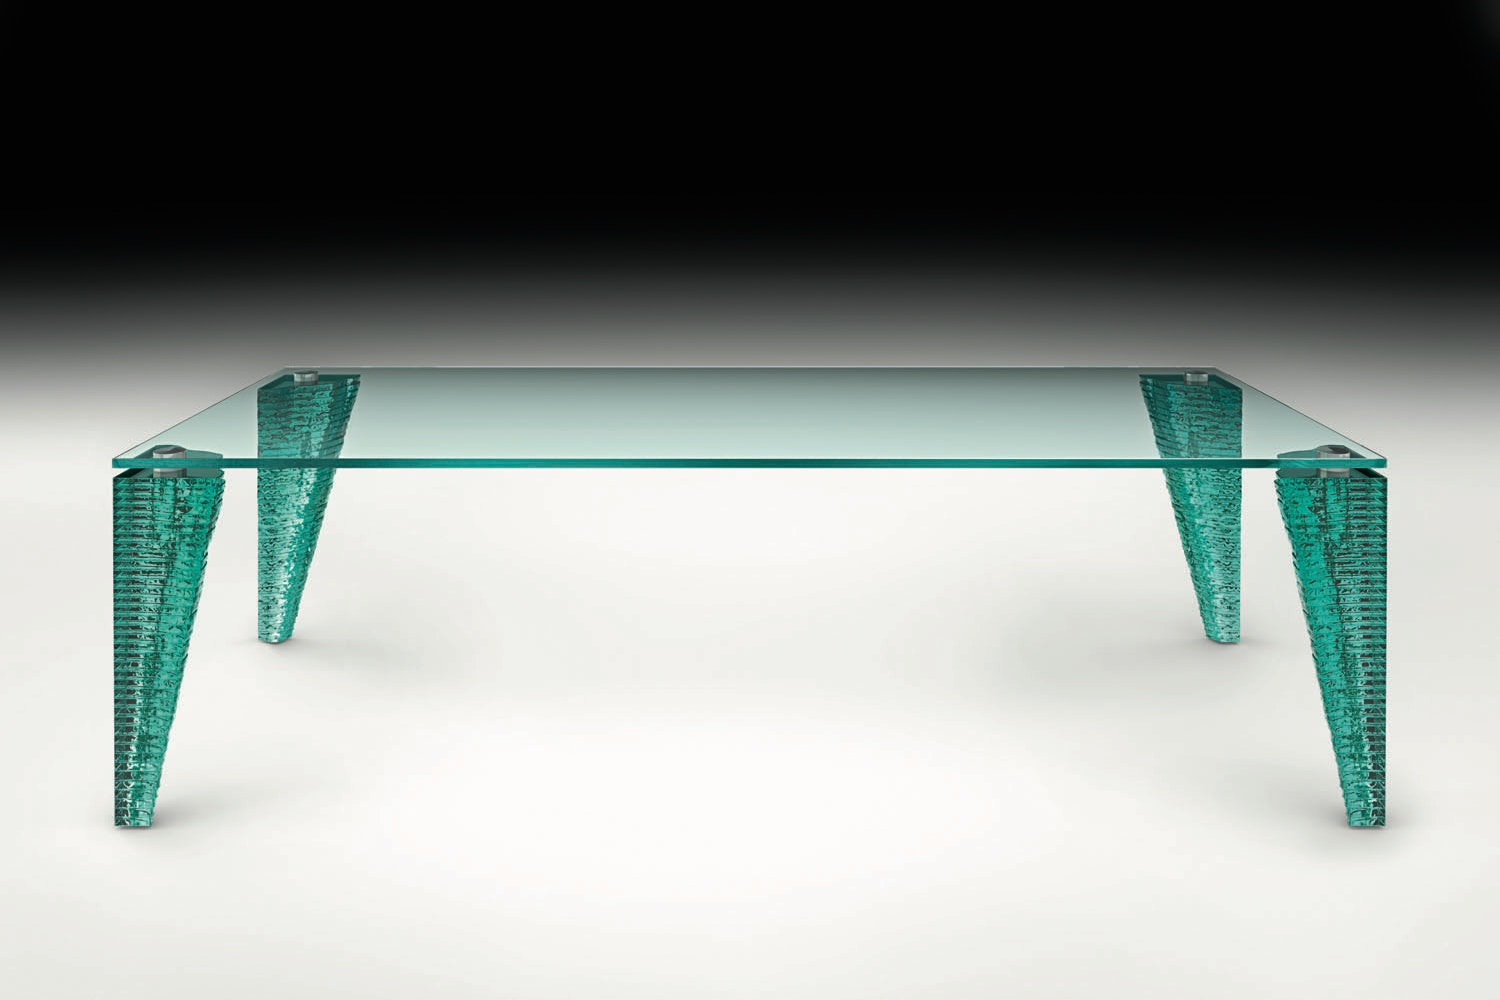 Atlas Table by Danny Lane for Fiam Italia